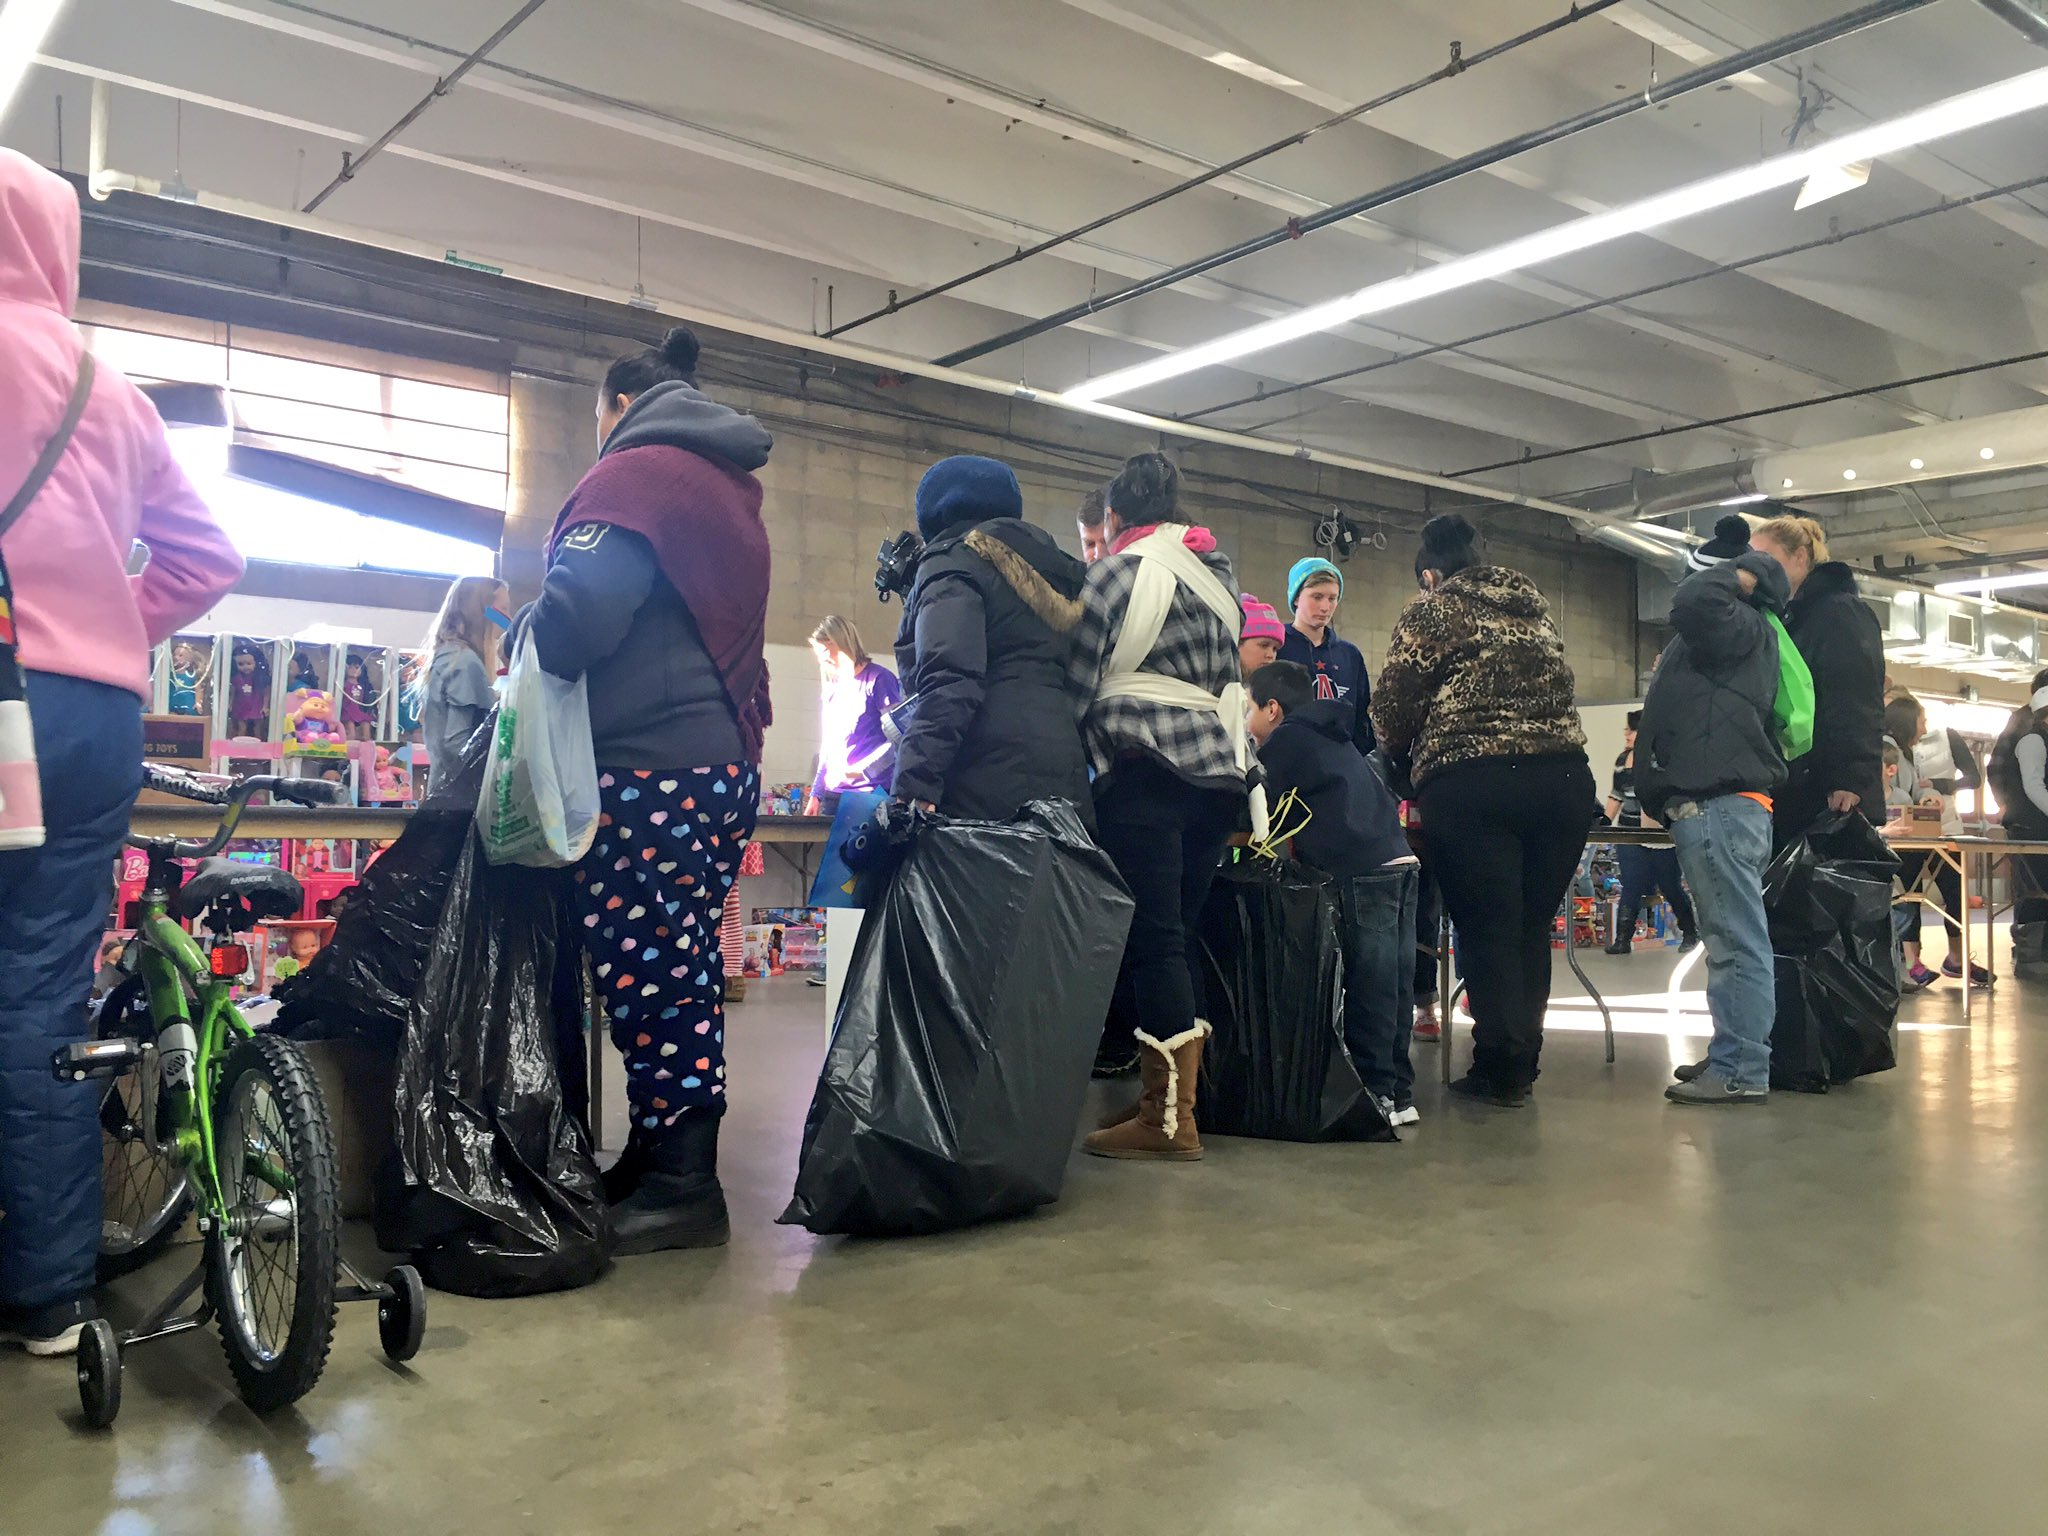 Christmas comes early for many Denver families